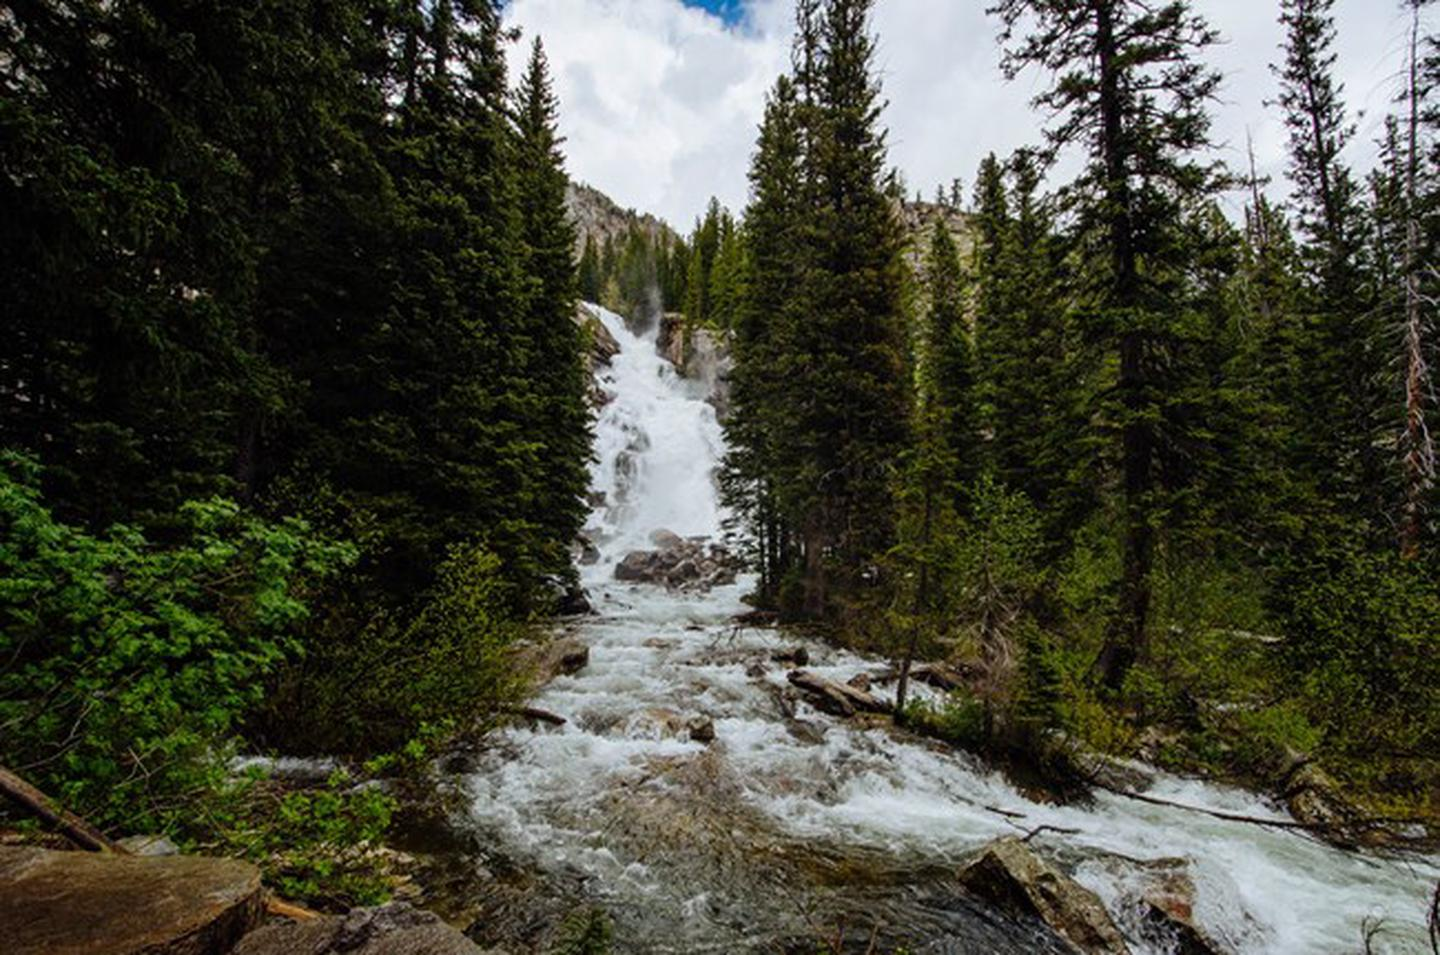 Hidden FallsSeveral popular trails begin at Jenny Lake. Hikers can loop the lake, visit Hidden Falls and Inspiration Point, or travel into the backcountry via Cascade Canyon. Longer and more challenging trails like Lake Solitude and Hurricane Pass are also accessible from this area.